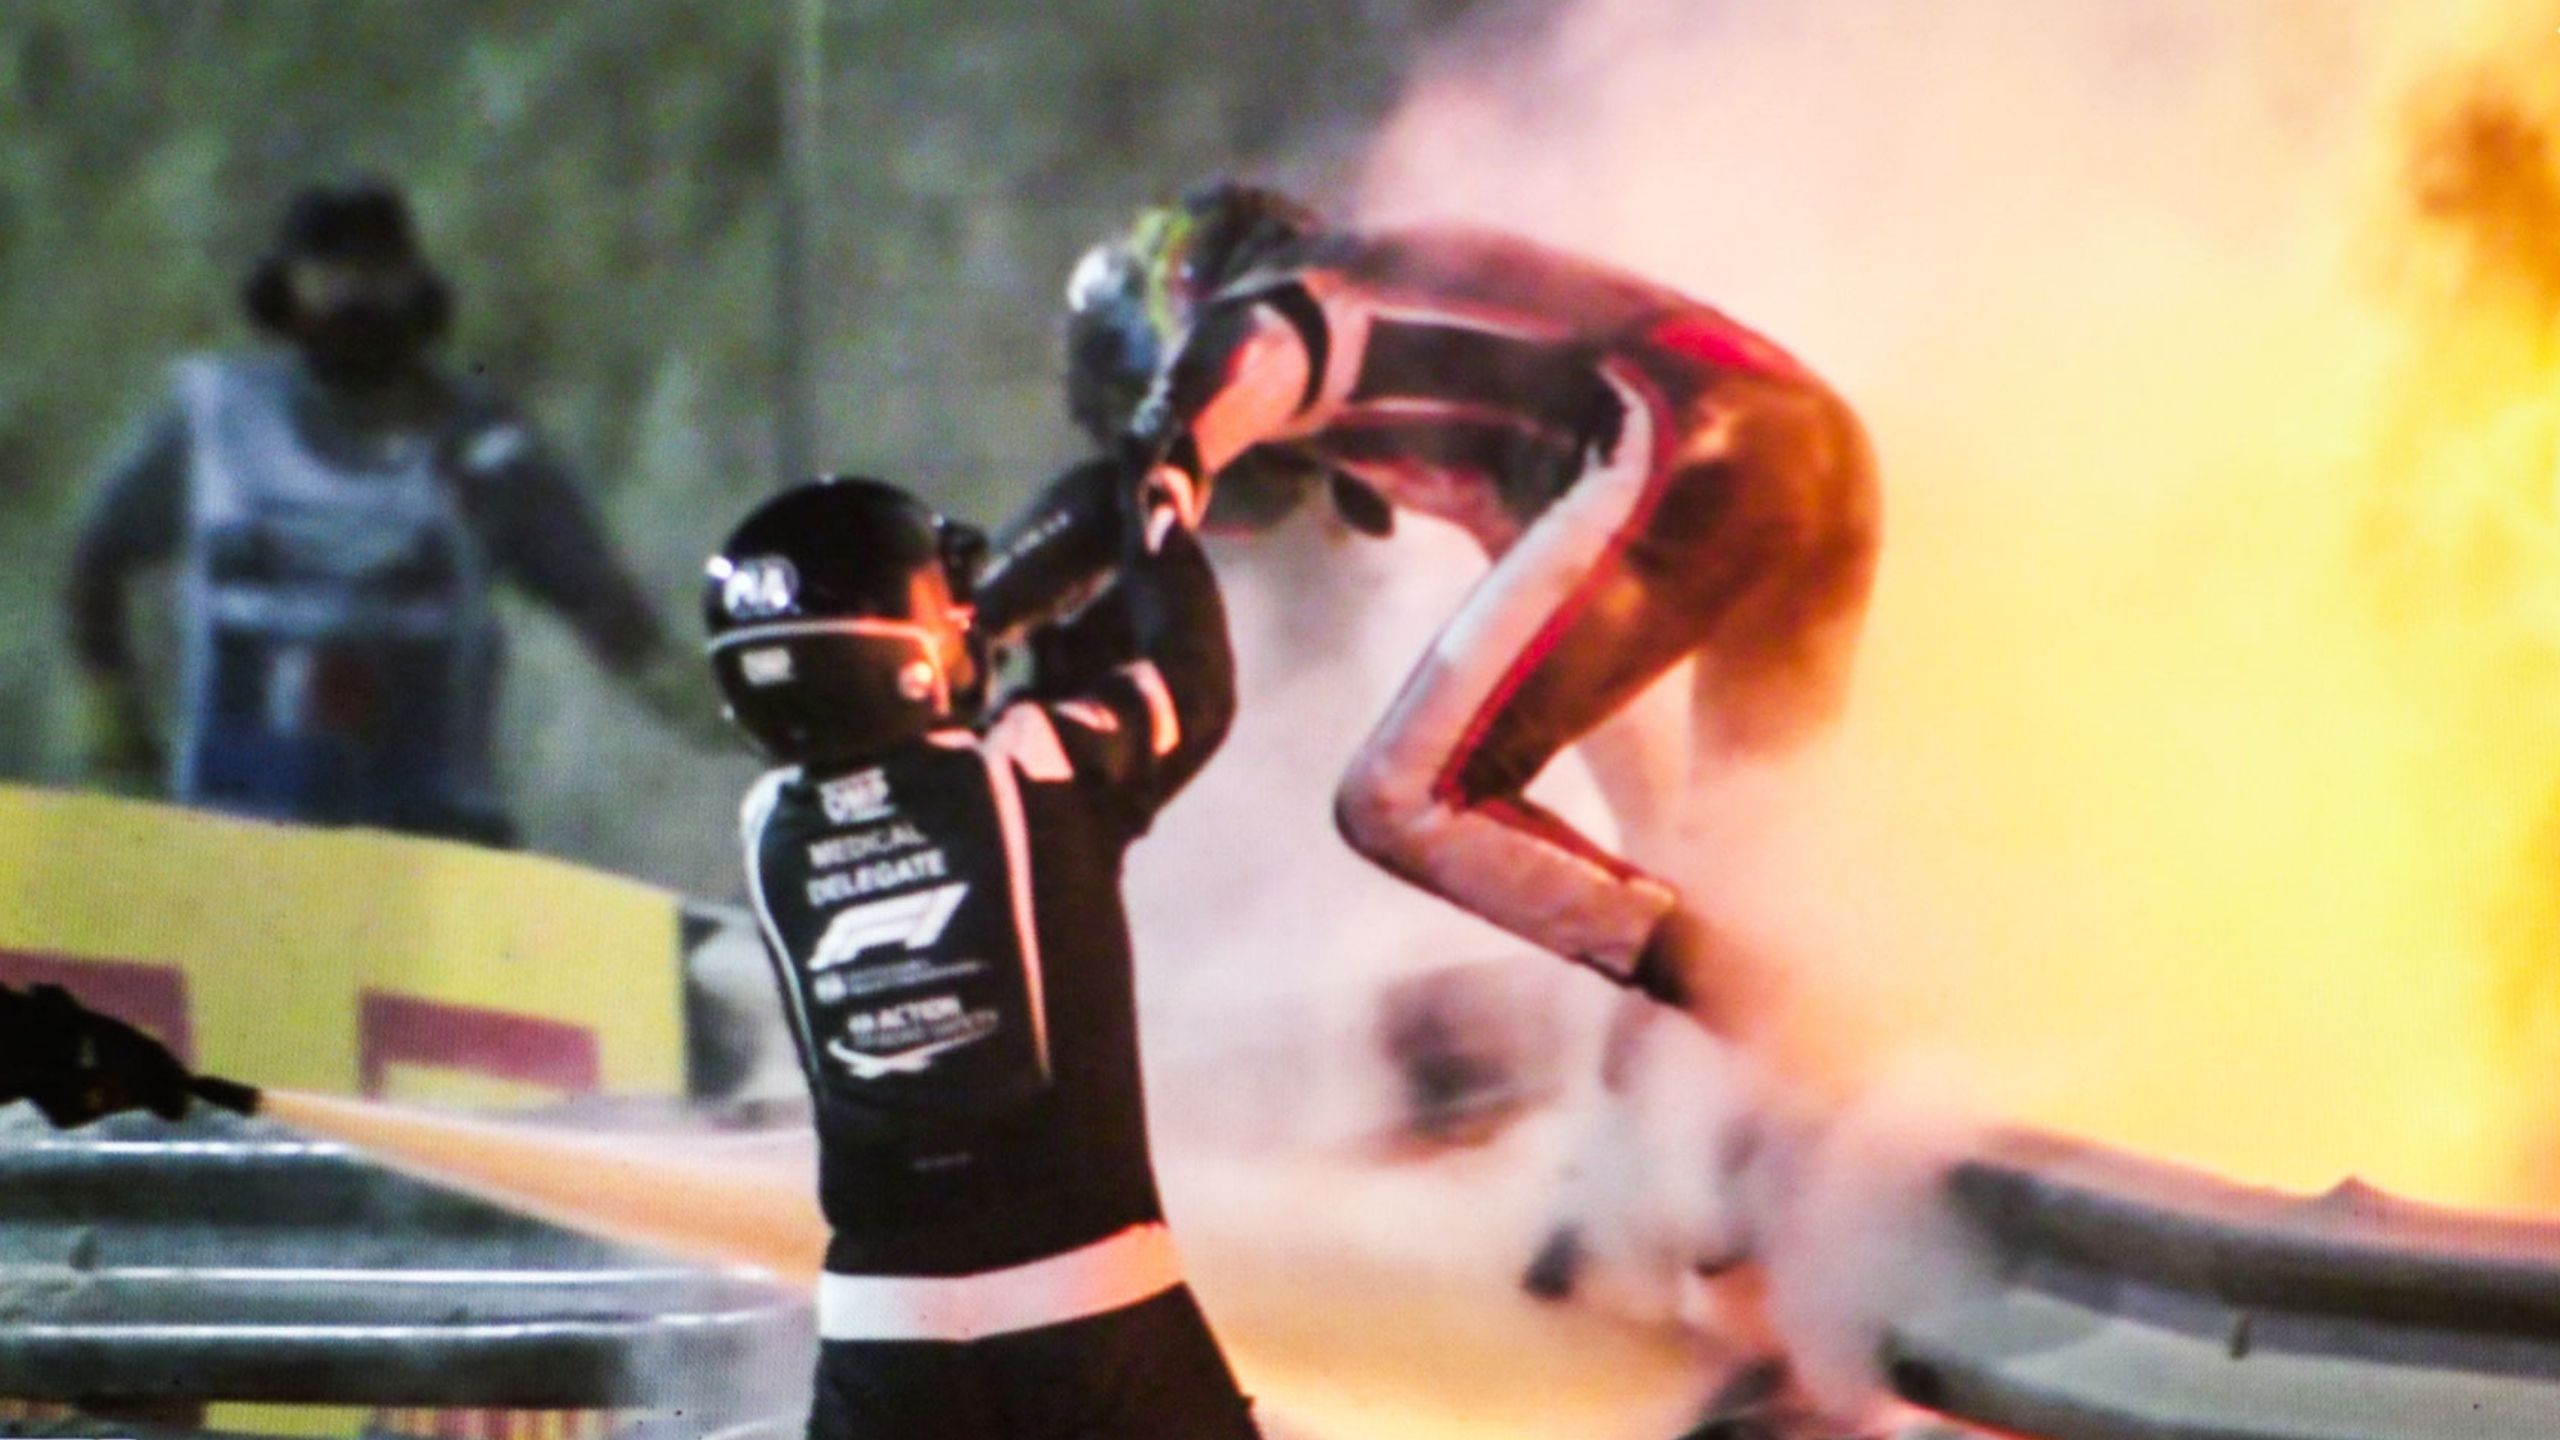 Romain Grosjean: How expensive was the horror crash at Bahrain for Haas, and other big crashes this season?